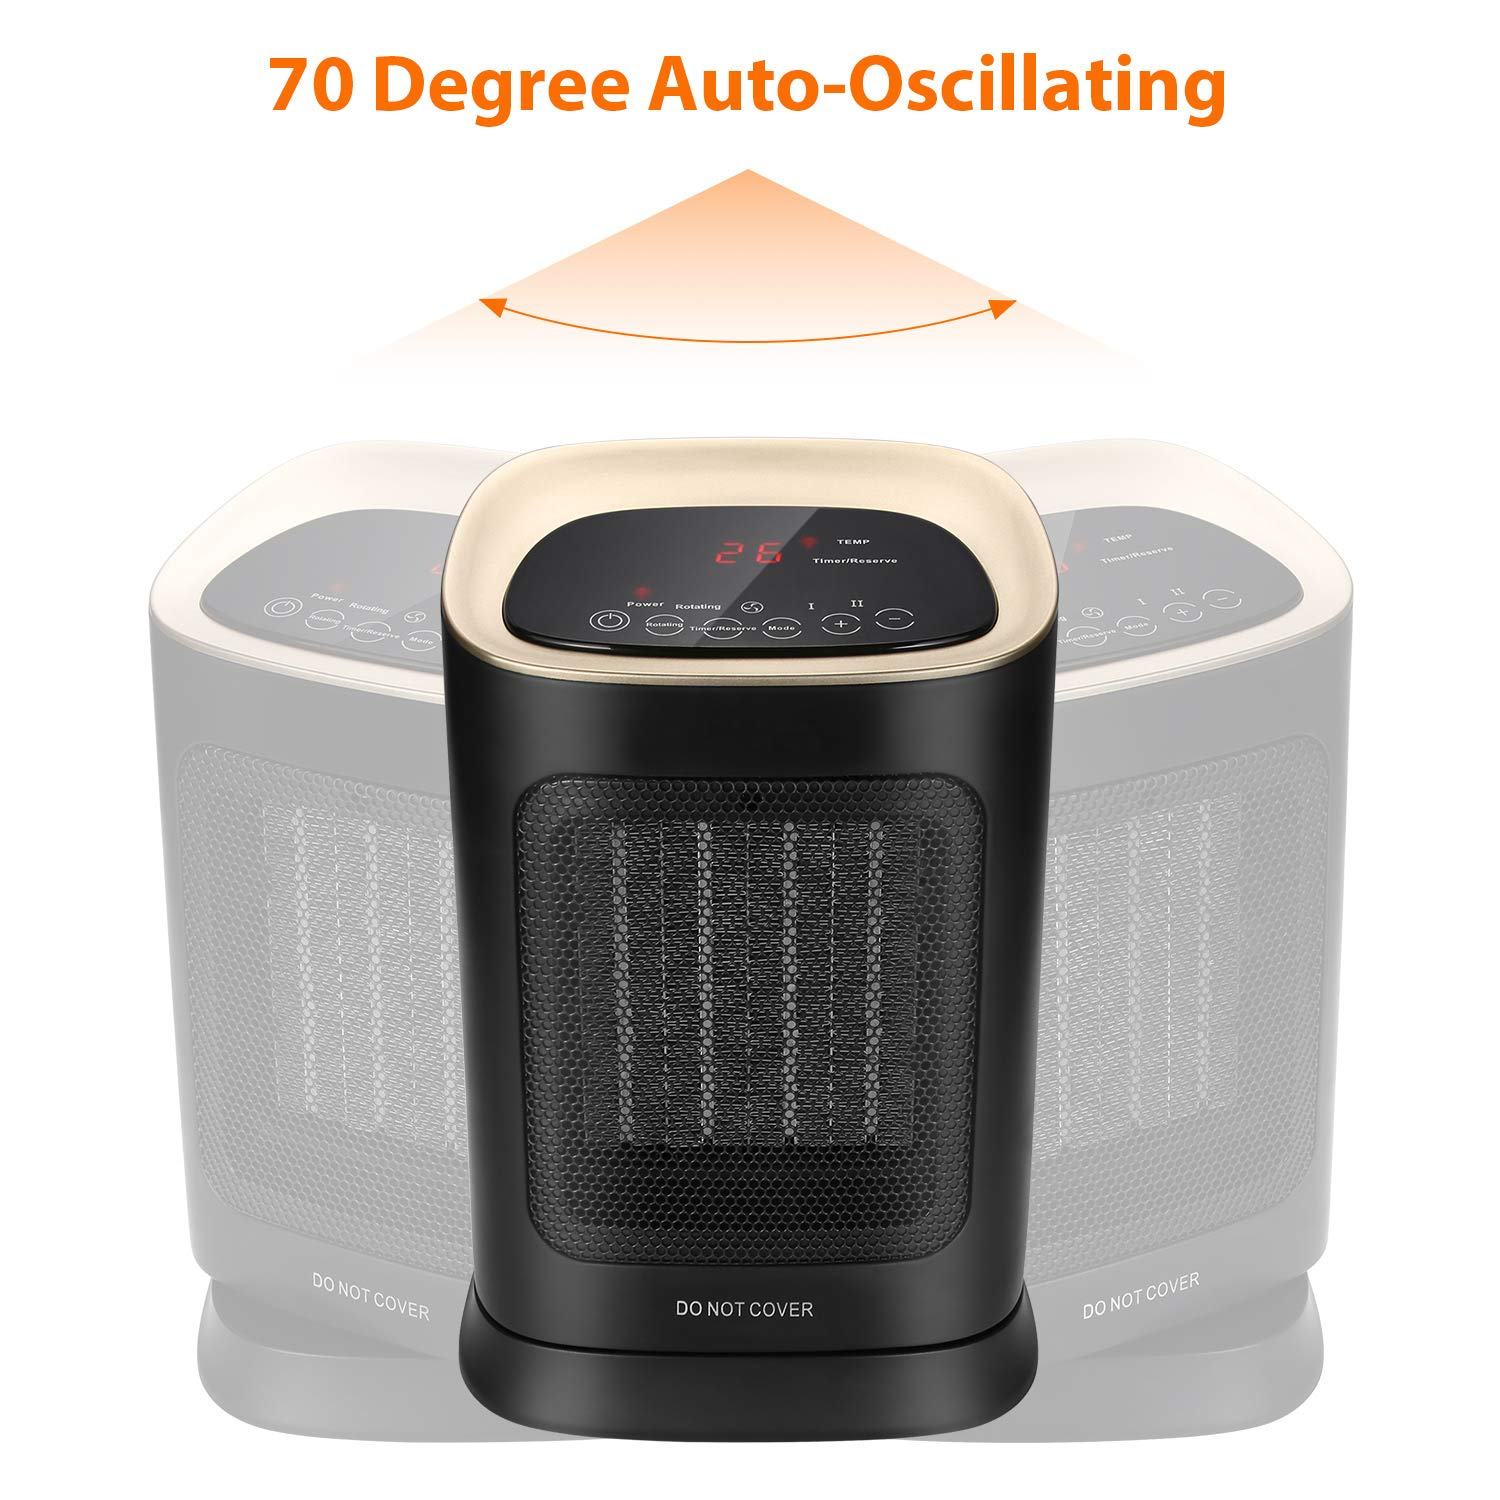 600W Personal Fan Heater with Warm and Natural Wind for Home Portable PTC Heater Office Bedroom Electric Fan Heater Oscillating Ceramic Fan Heater White Desktop 2018 Newest SEZAC